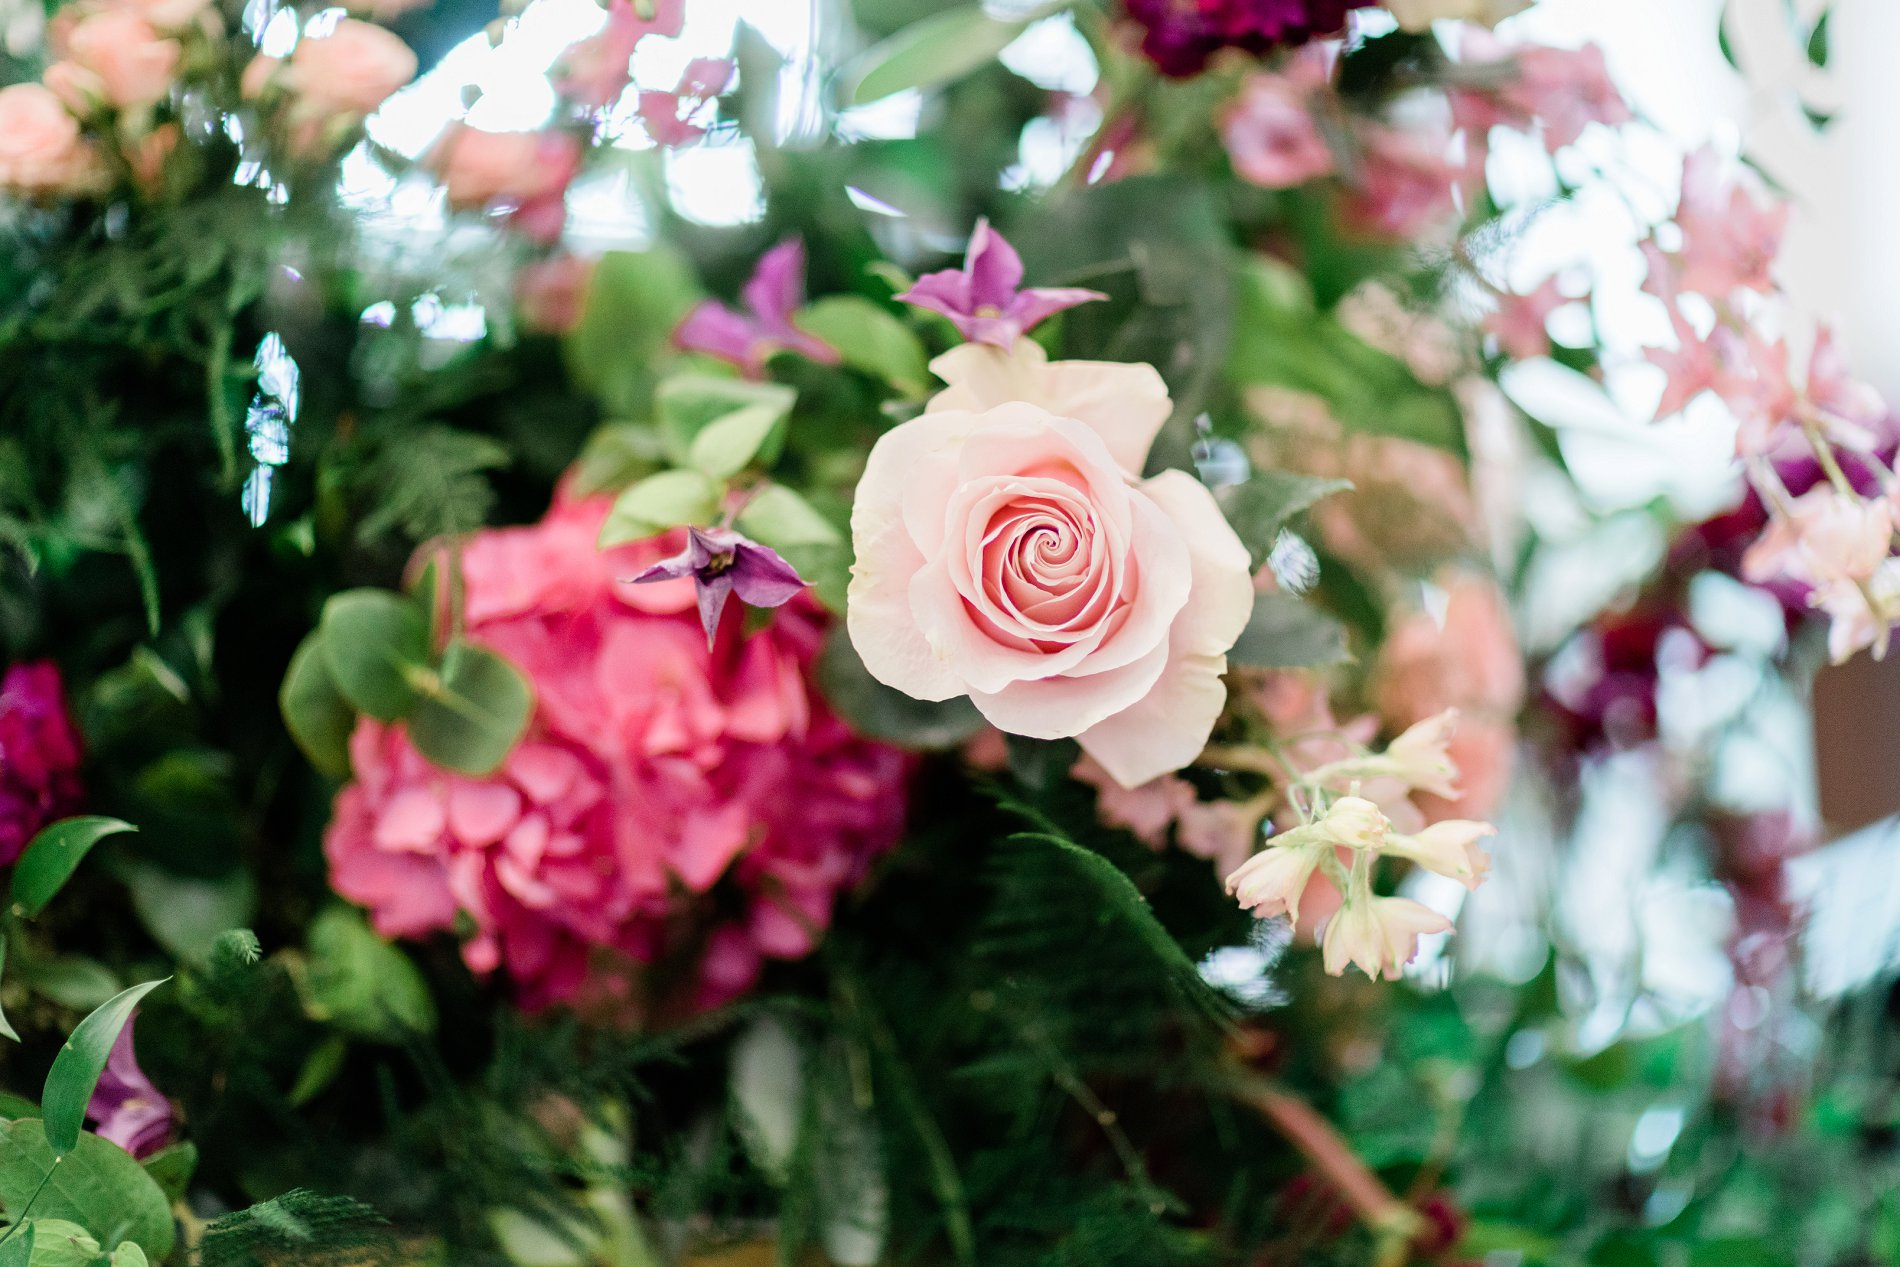 Forever Yours Styled Shoot (c) Camilla J. Hards and Courtney Dee Photography (14)